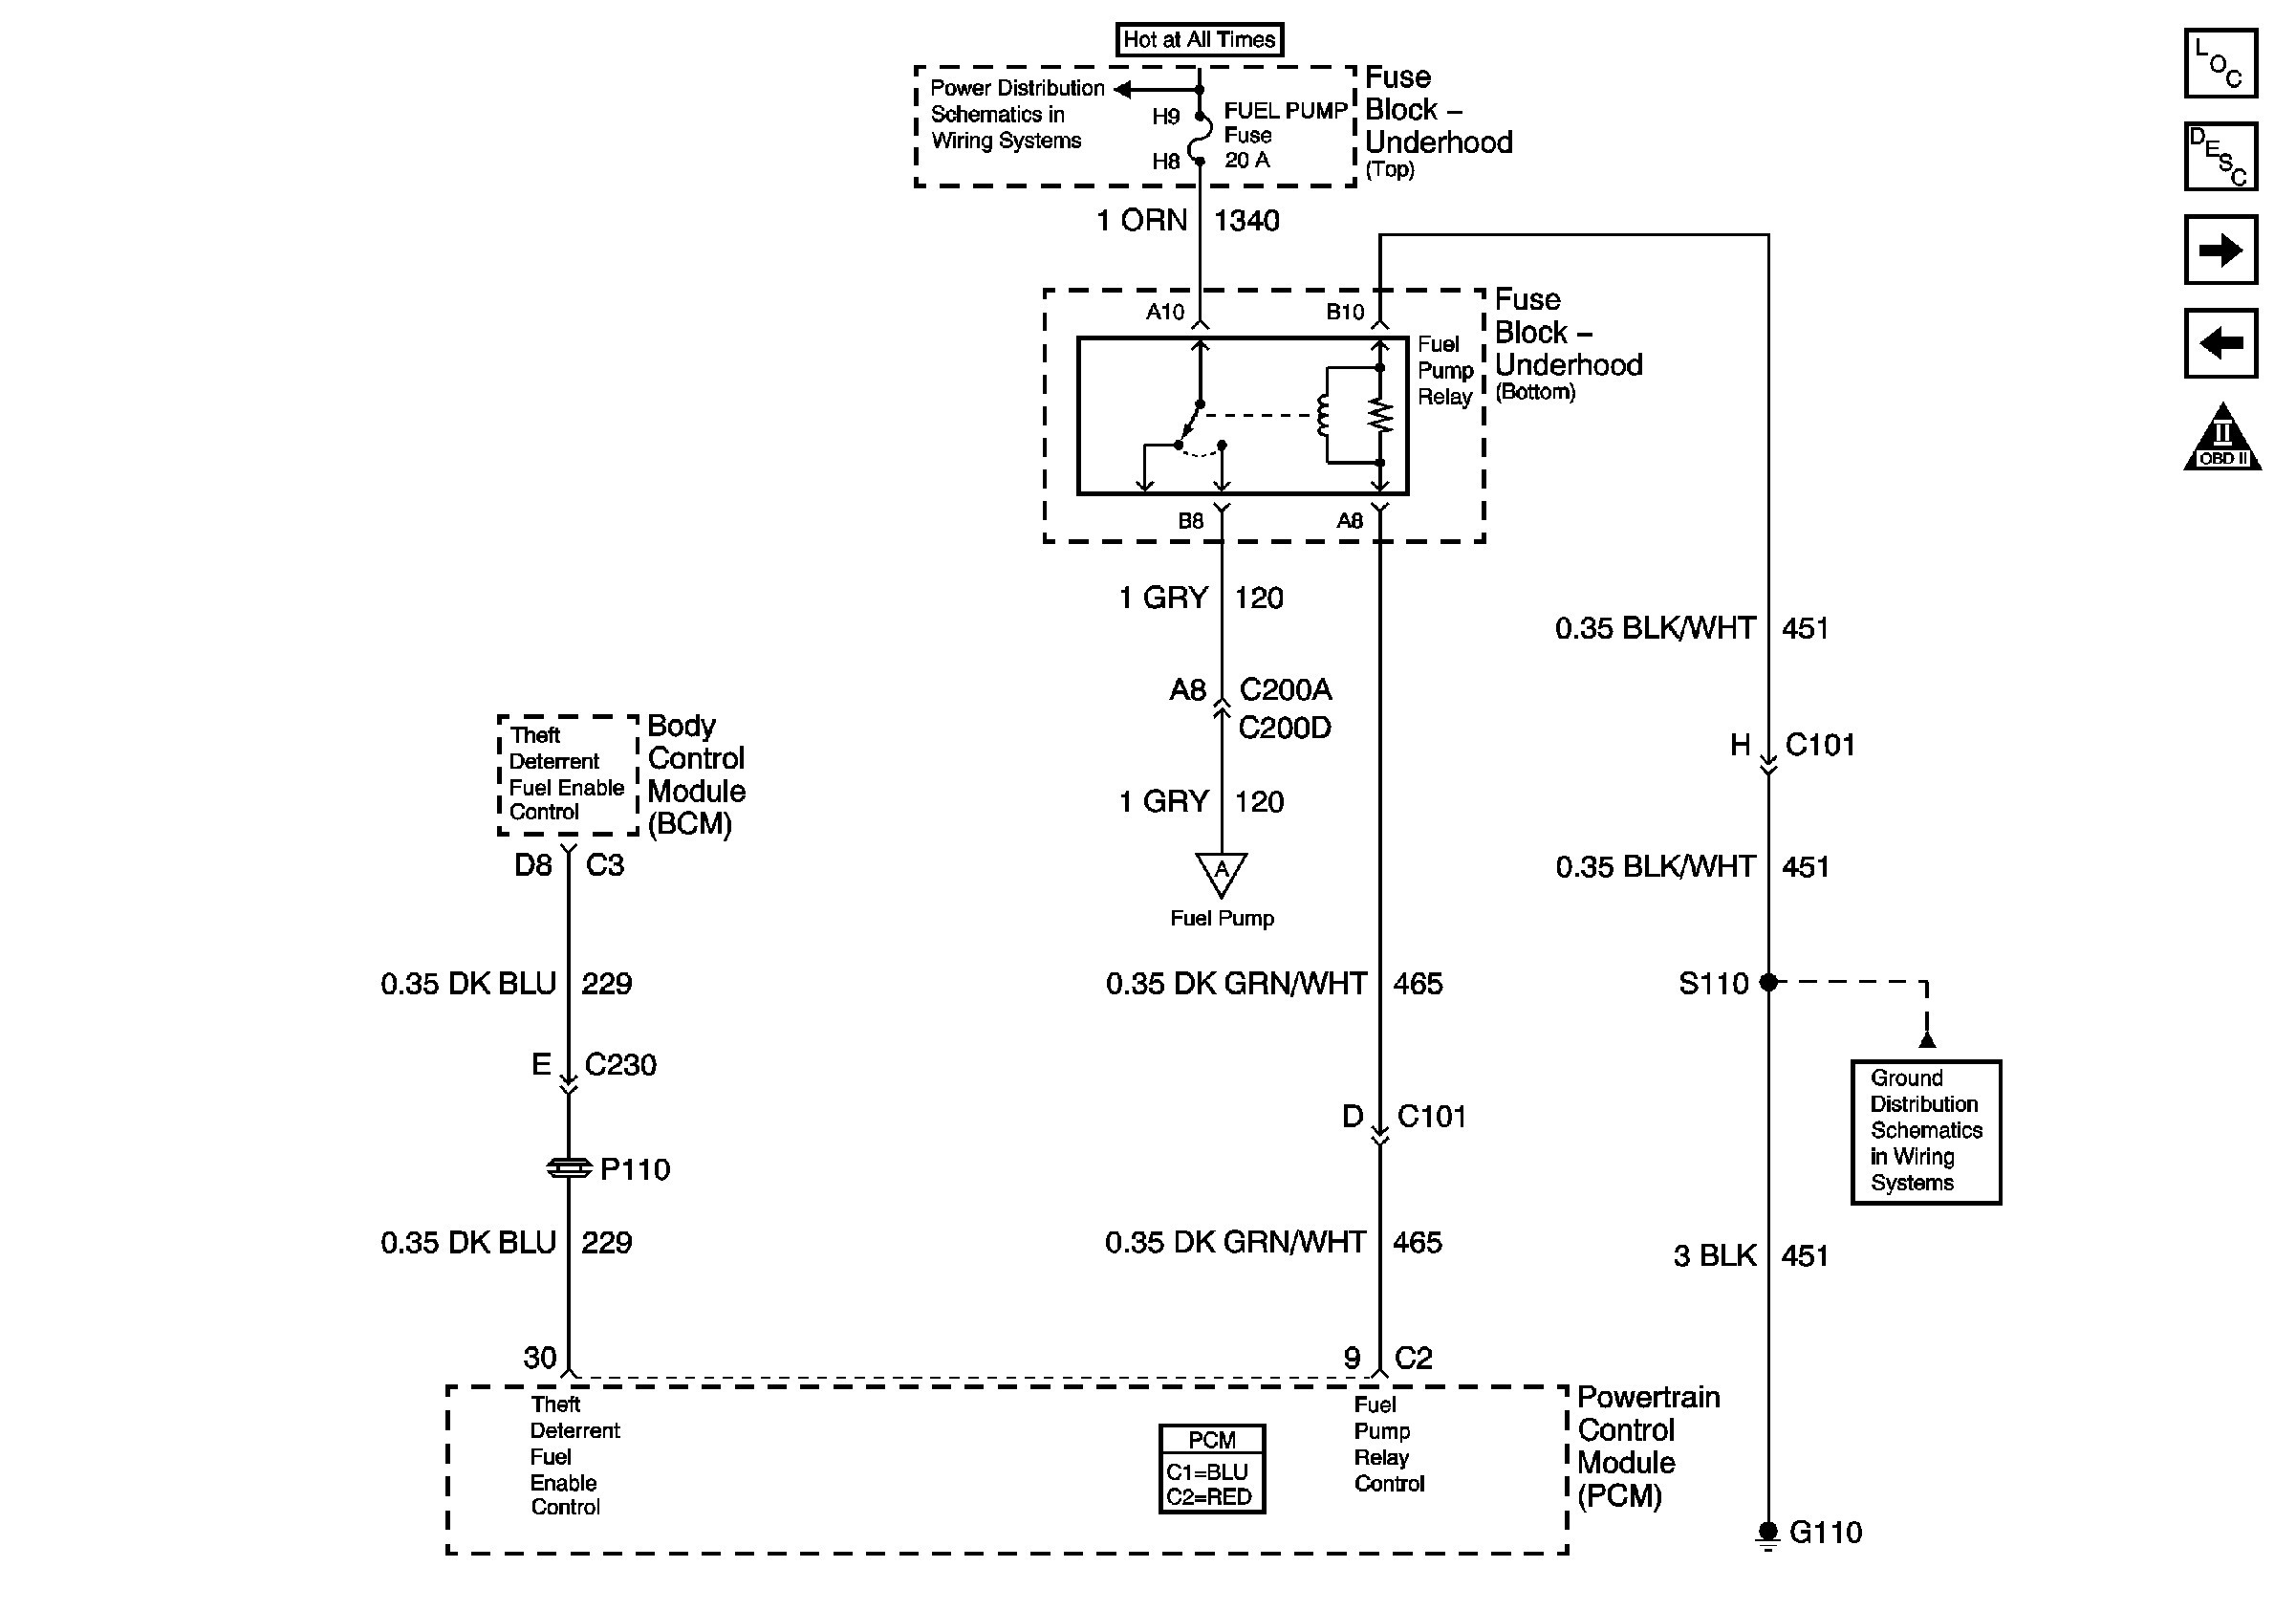 ba falcon ute stereo wiring diagram 2003 gas club car holden commodore v vs hight resolution of for vx radio library ford factory